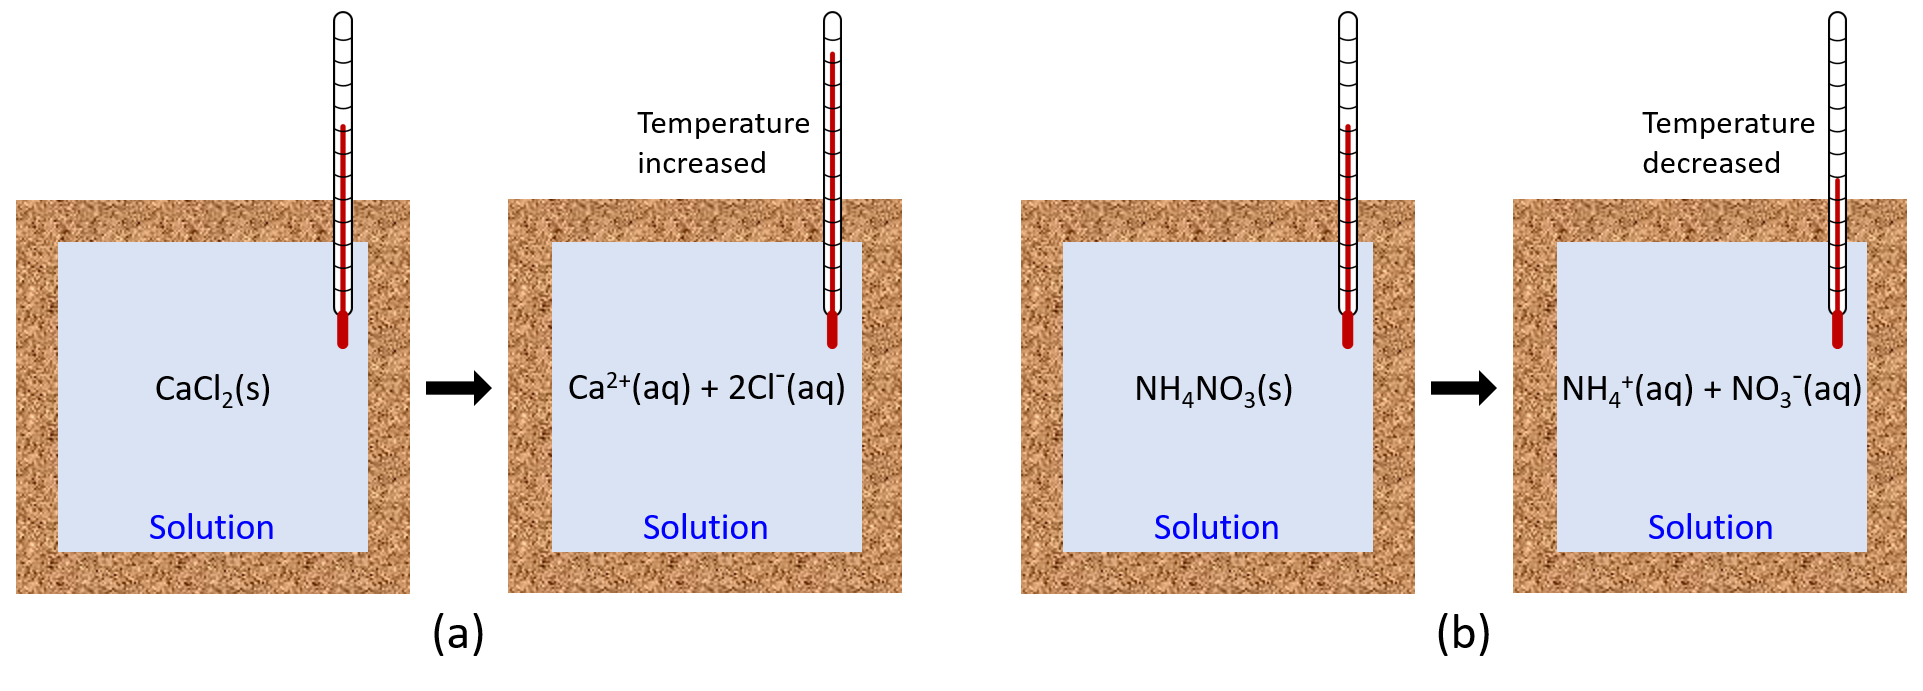 """Two diagrams labeled a and b are shown. Each is made up of two rectangular containers with a thermometer inserted into the top right and extending inside. There is a right facing arrow connecting each box in each diagram. The left container in diagram a depicts a solution with the term """"CaCl2(s)"""" written in the center. The label """"Solution"""" are written at the bottom of the container. The right container in diagram a has the term """"Ca2+(aq) + 2Cl-(aq)"""" written in the center and """"Solution"""" written at the bottom of the container. The phrase """"Temperature increased"""" is next to the thermometer. The left container in diagram b depicts a solution with the terms """"NH4NO3(s)"""" written in the center and """"Solution"""" written at the bottom. The right container in diagram b has the term"""